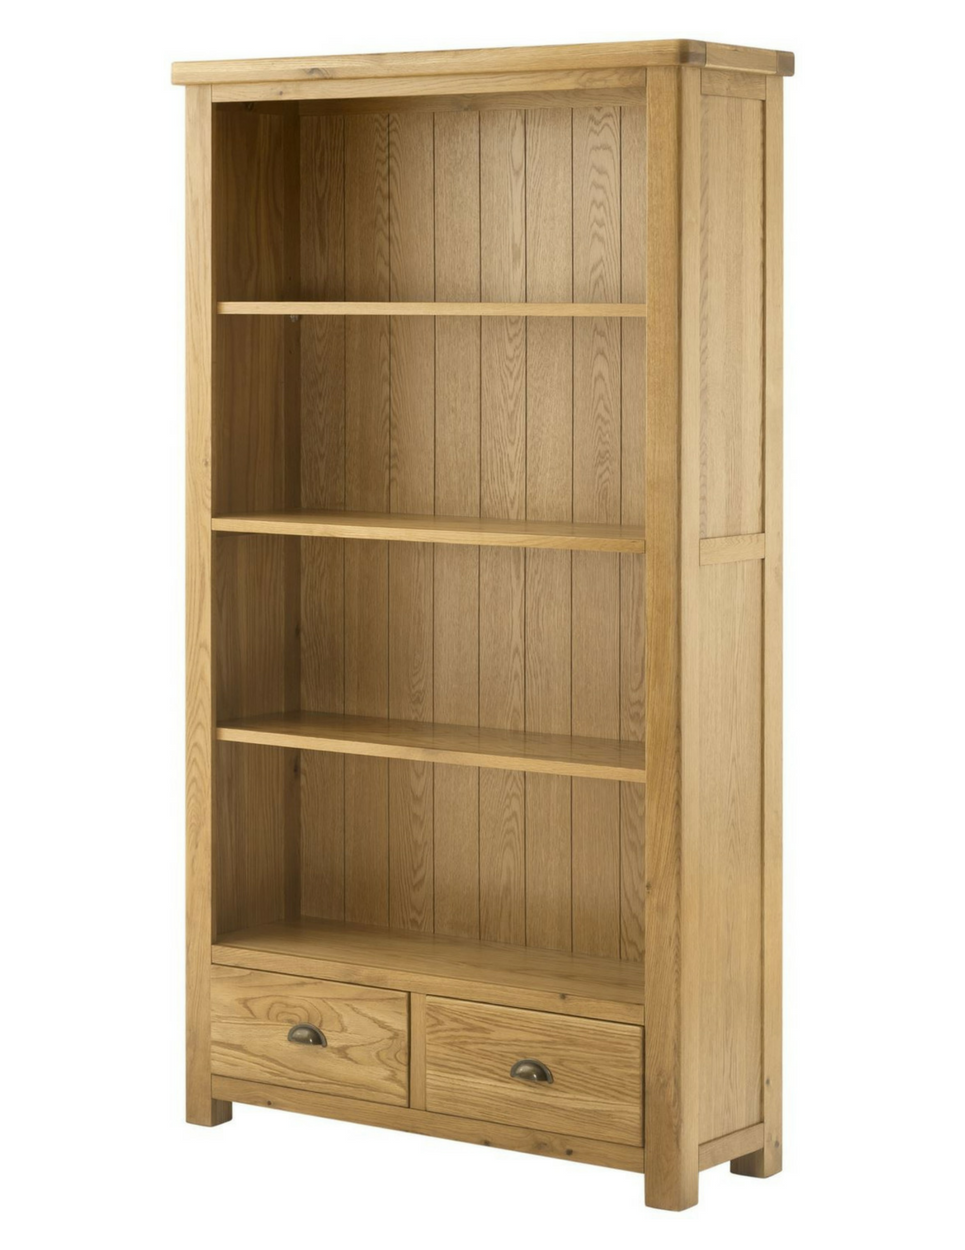 Homefitzroylarge bookcase with drawers previous